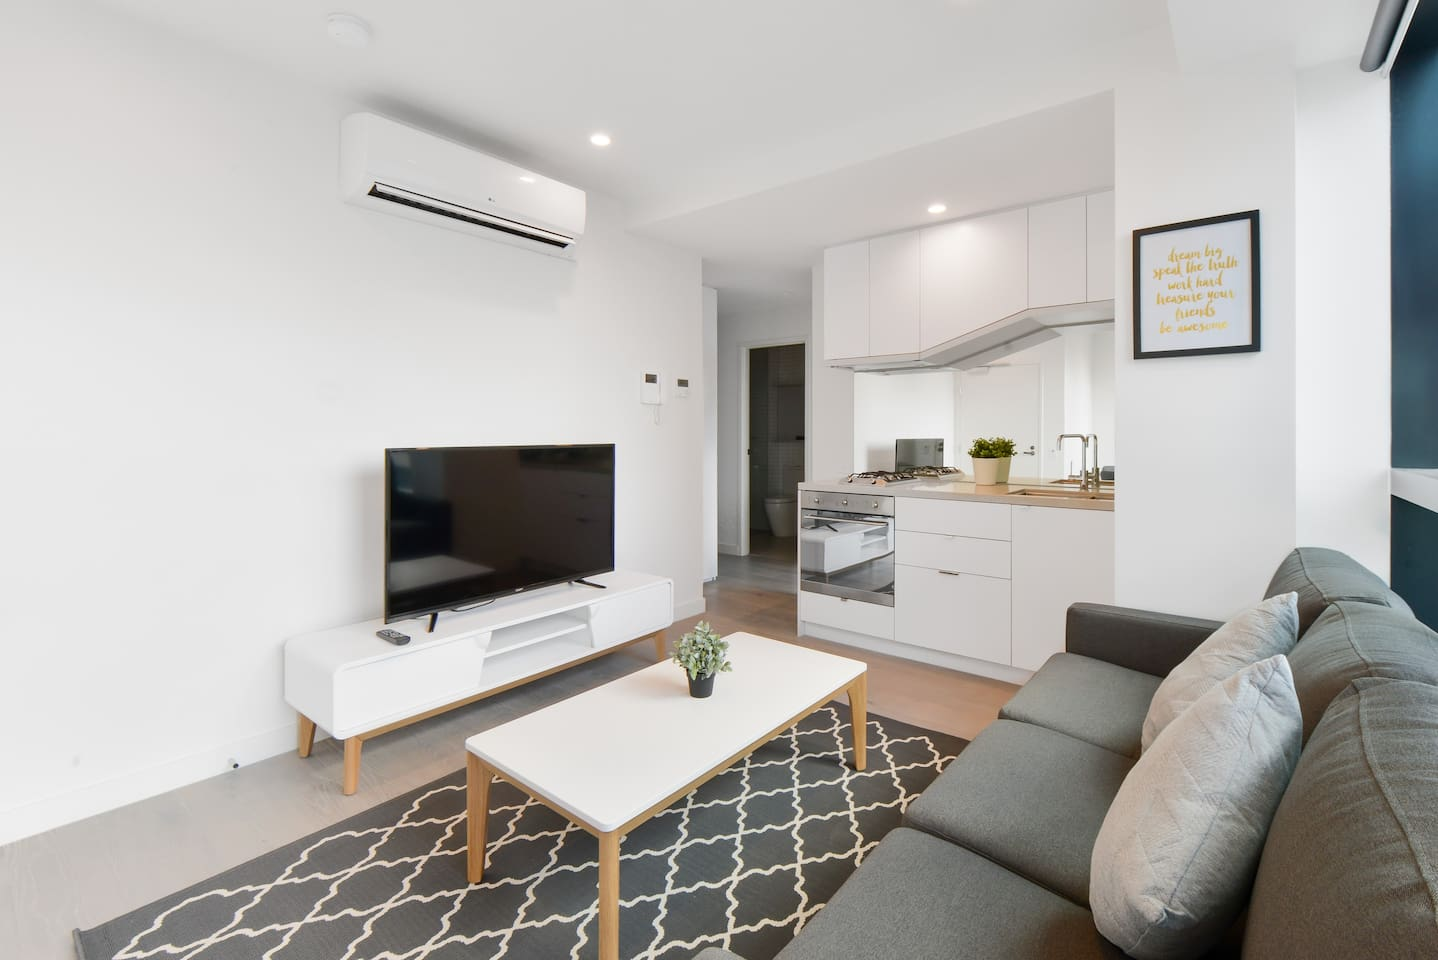 Complete amenities for your stay. Furniture may slightly differs from the real ones due to wear and tear. But, all main amenities (Kitchen, living, washing machine/dryer, etc) are still complete and available during stay.